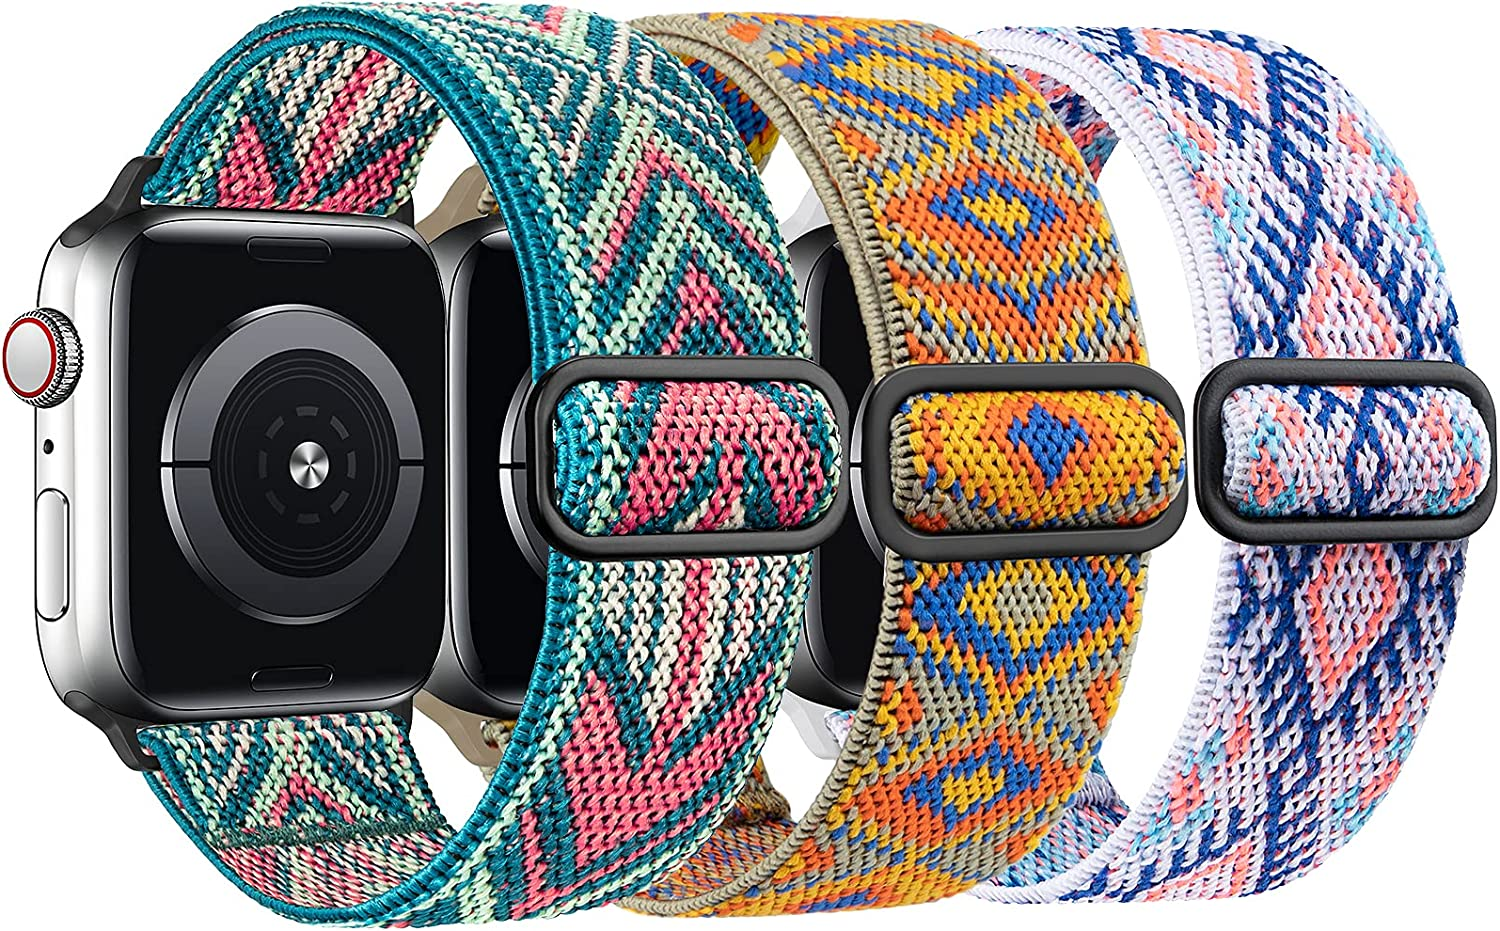 Greatfine Stretchy Watch Bands Compatible with Apple Watch Band 38mm 40mm 42mm 44mm for Women Men,Adjustable Elastic Solo Loop Straps,Sport Replacement Band for iWatch Series 6/5/4/3/2/1/SE,3 Packs